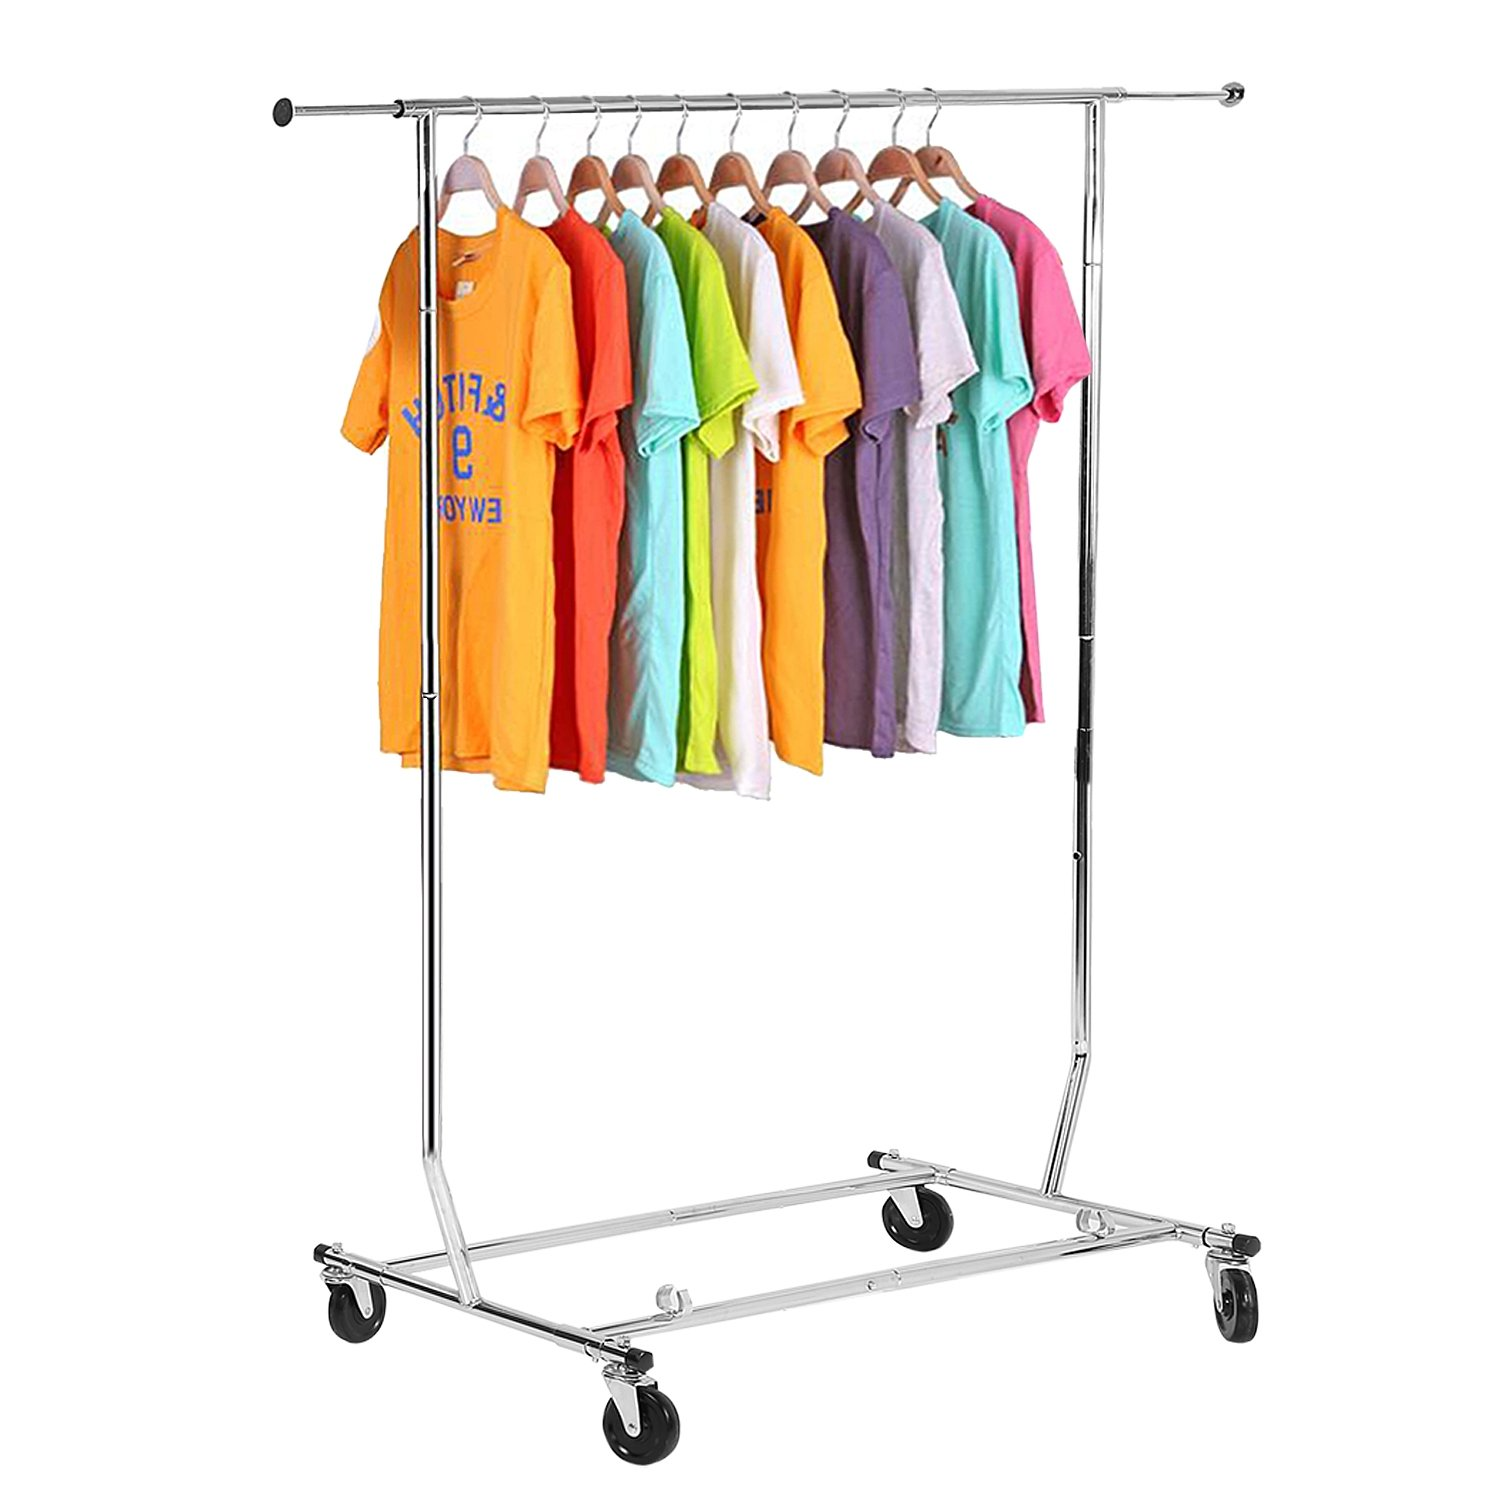 Adjustable Rolling Steel Garment Rack Portable Heavy Duty Clothes Hanger Organizer with 4 Wheels for Home and Commercial Use(US Stock)